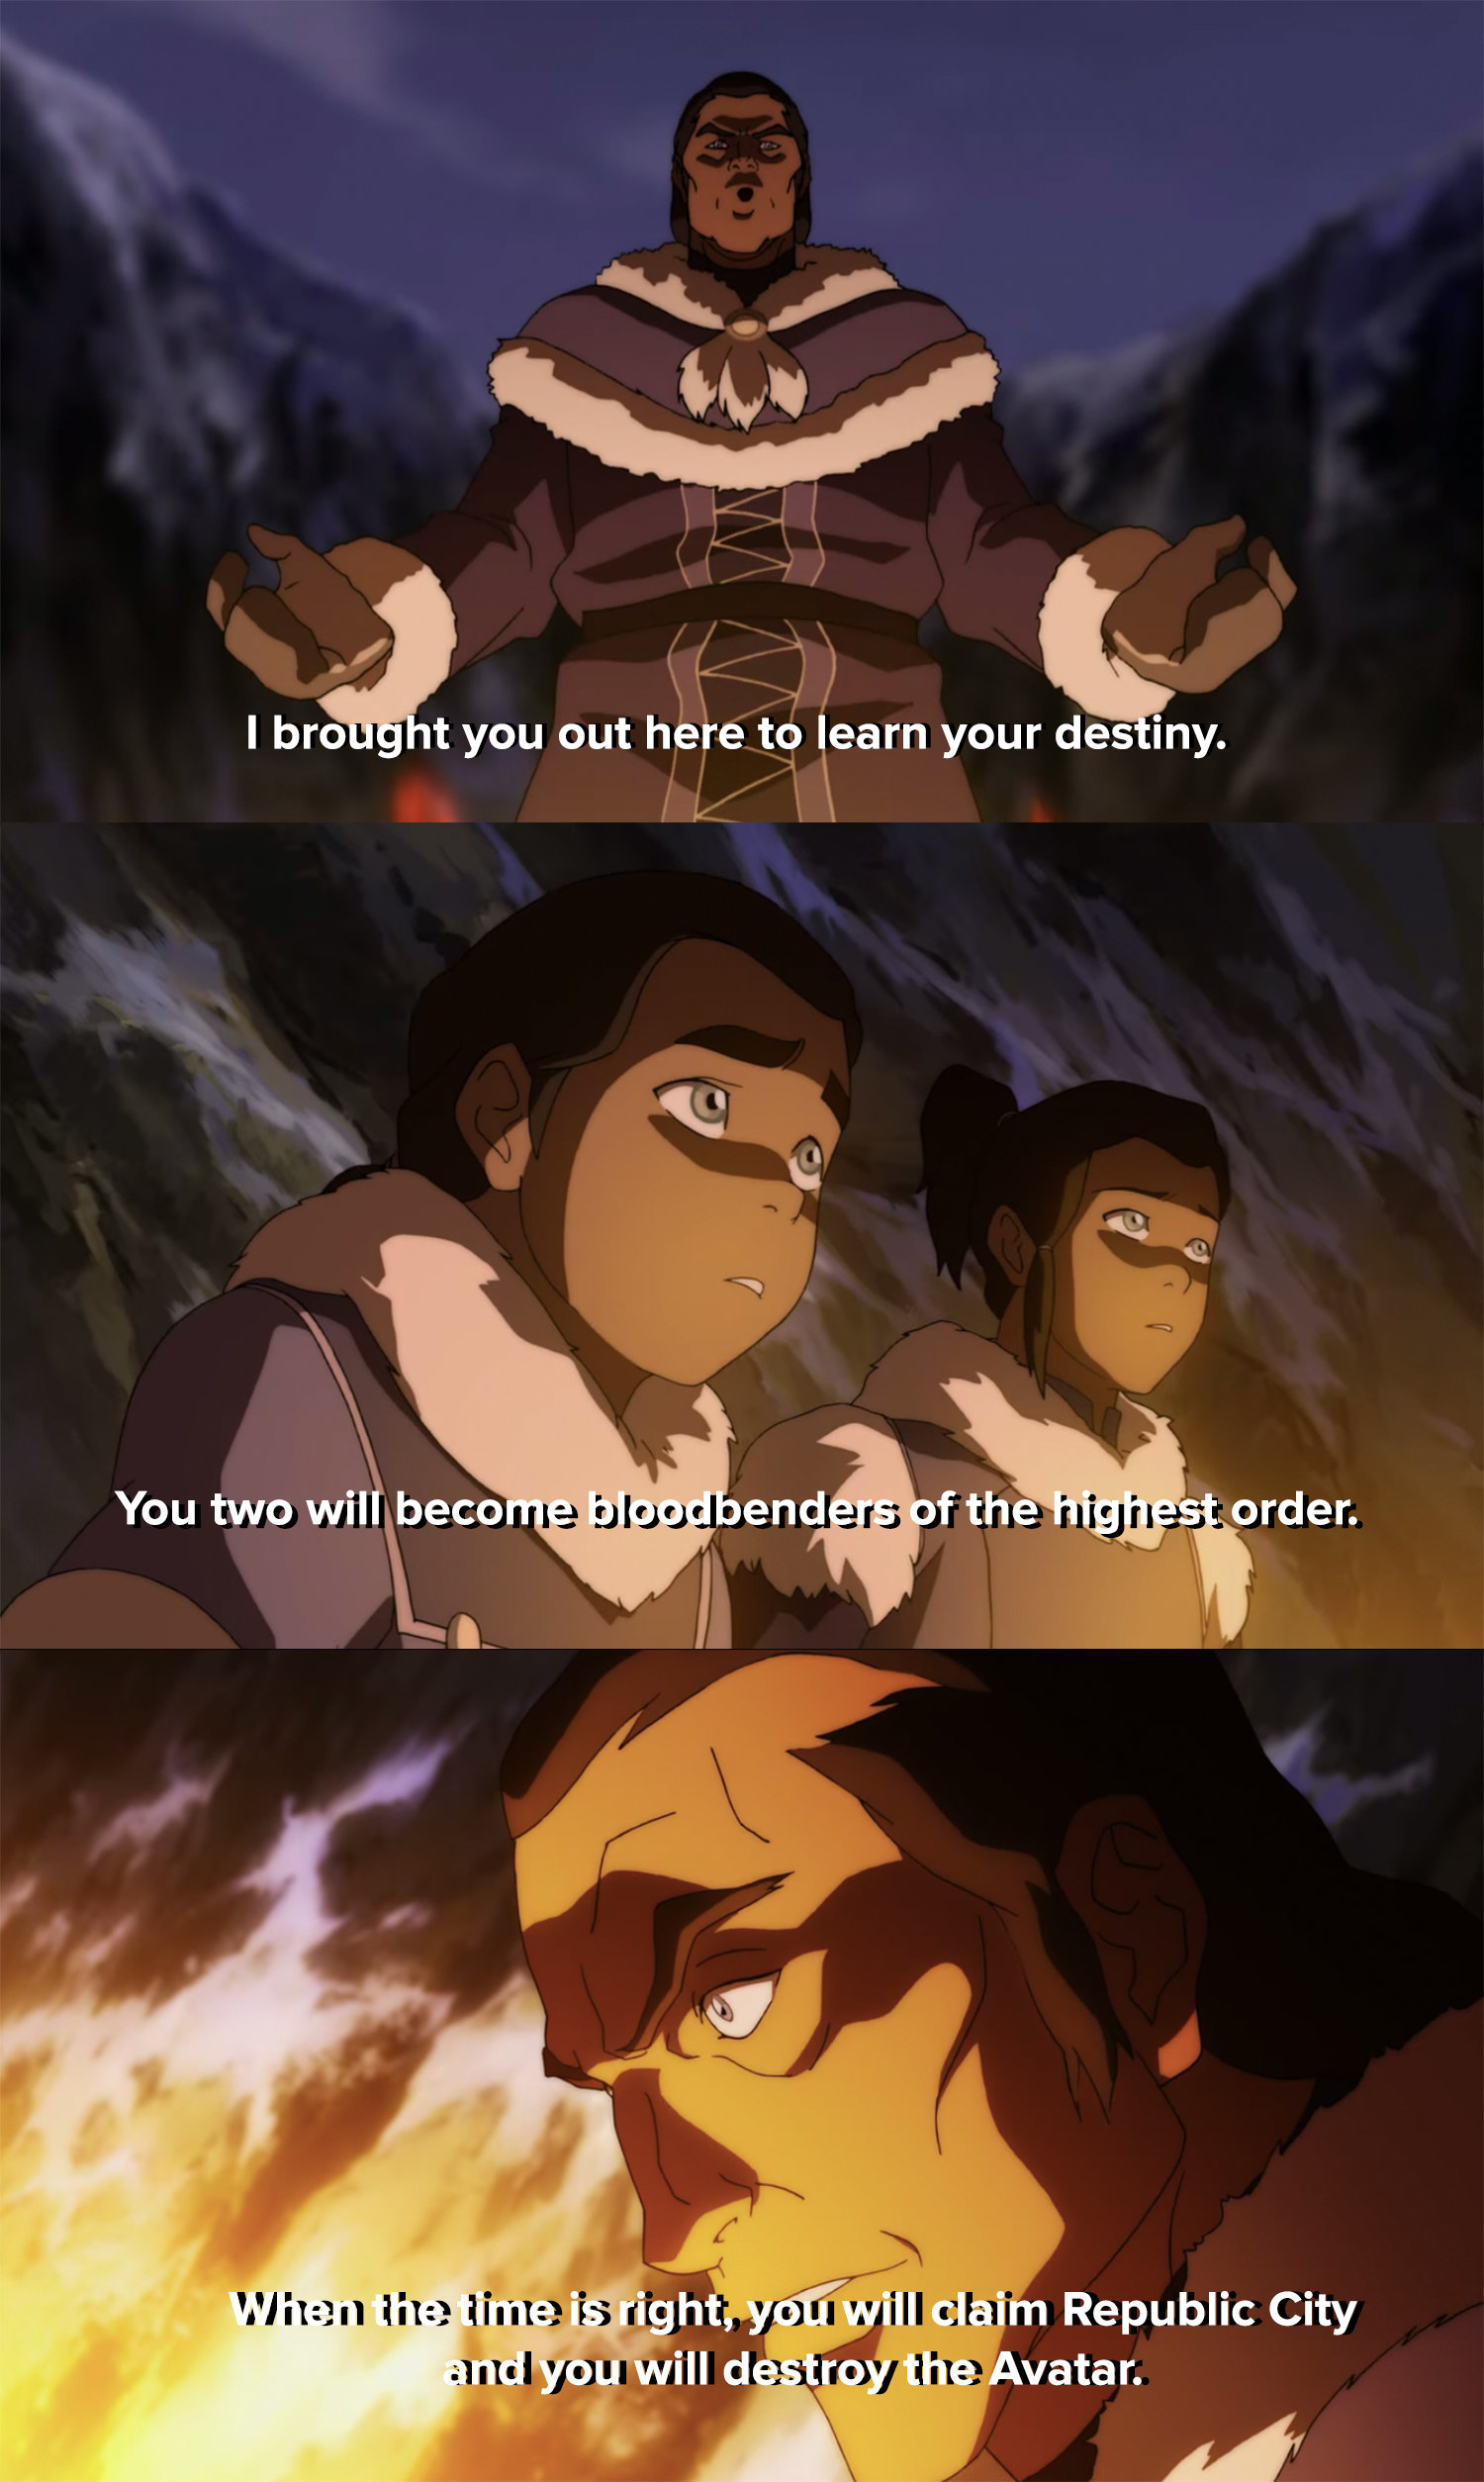 Amon's father tells him and his brother that they're destined to become bloodbenders and destroy the Avatar